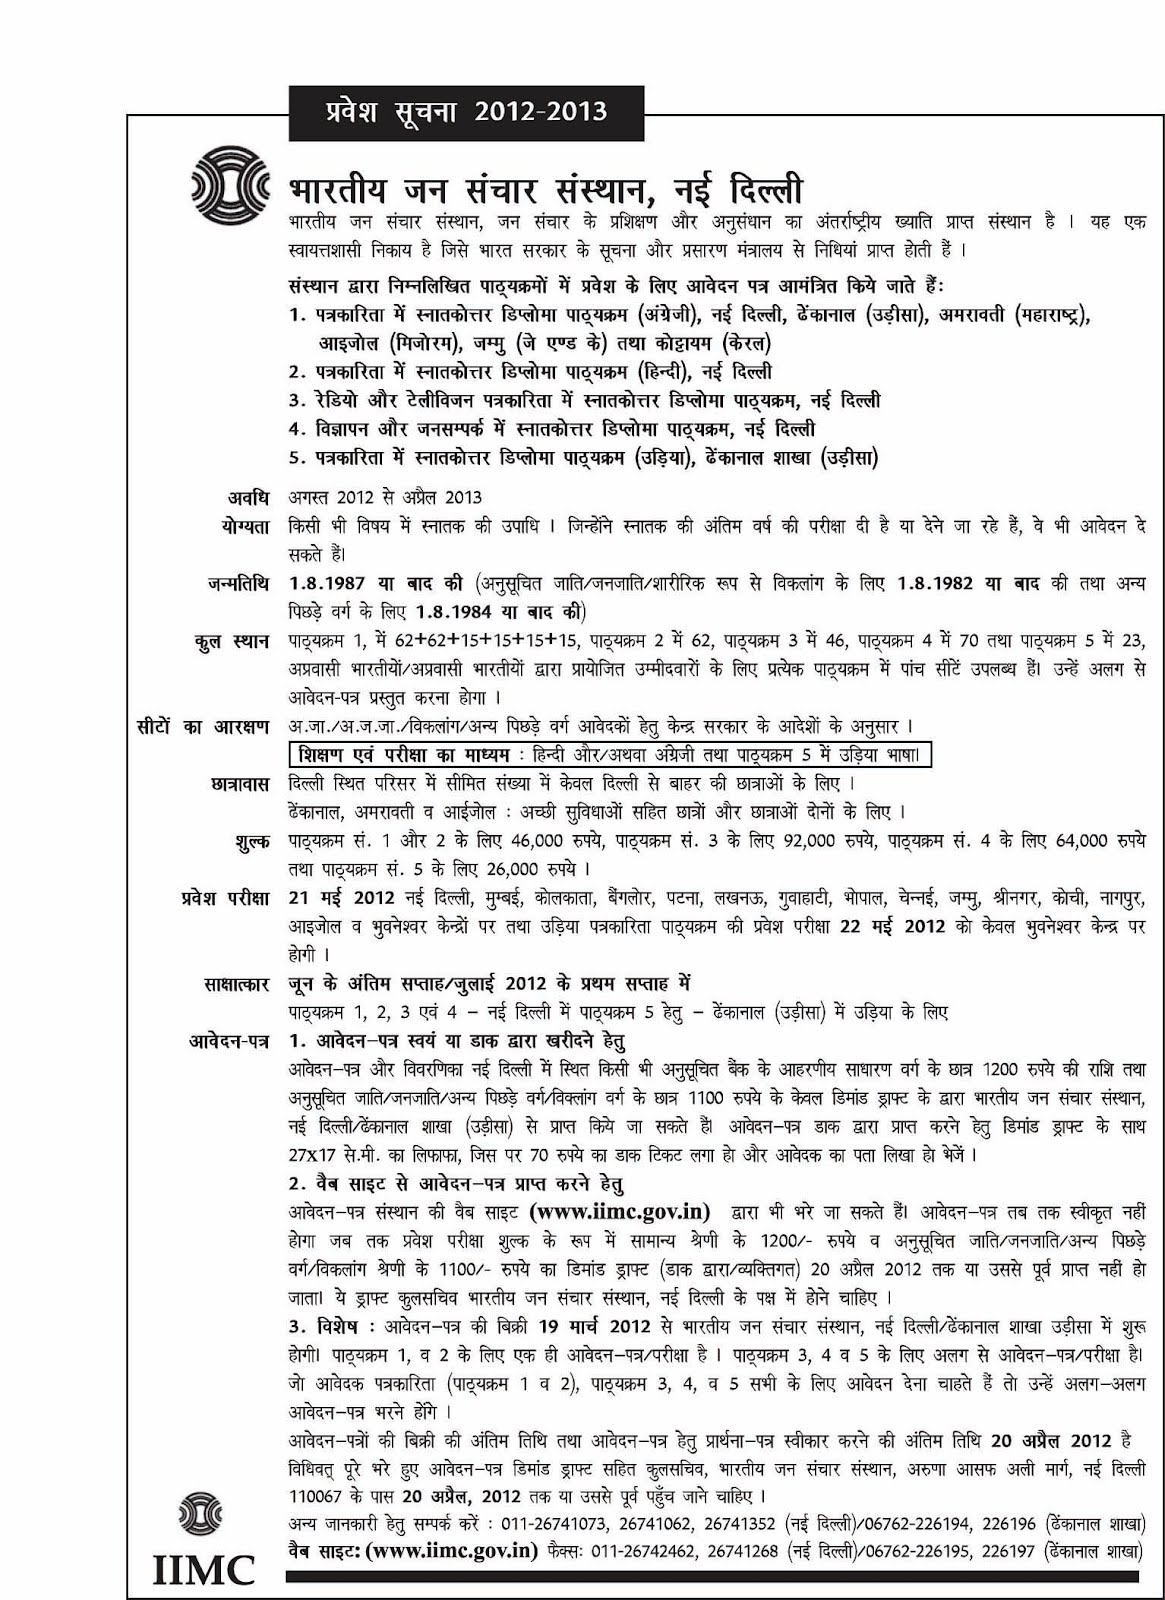 essay on terrorism in hindi language download  essay on terrorism  essay on terrorism in hindi language download